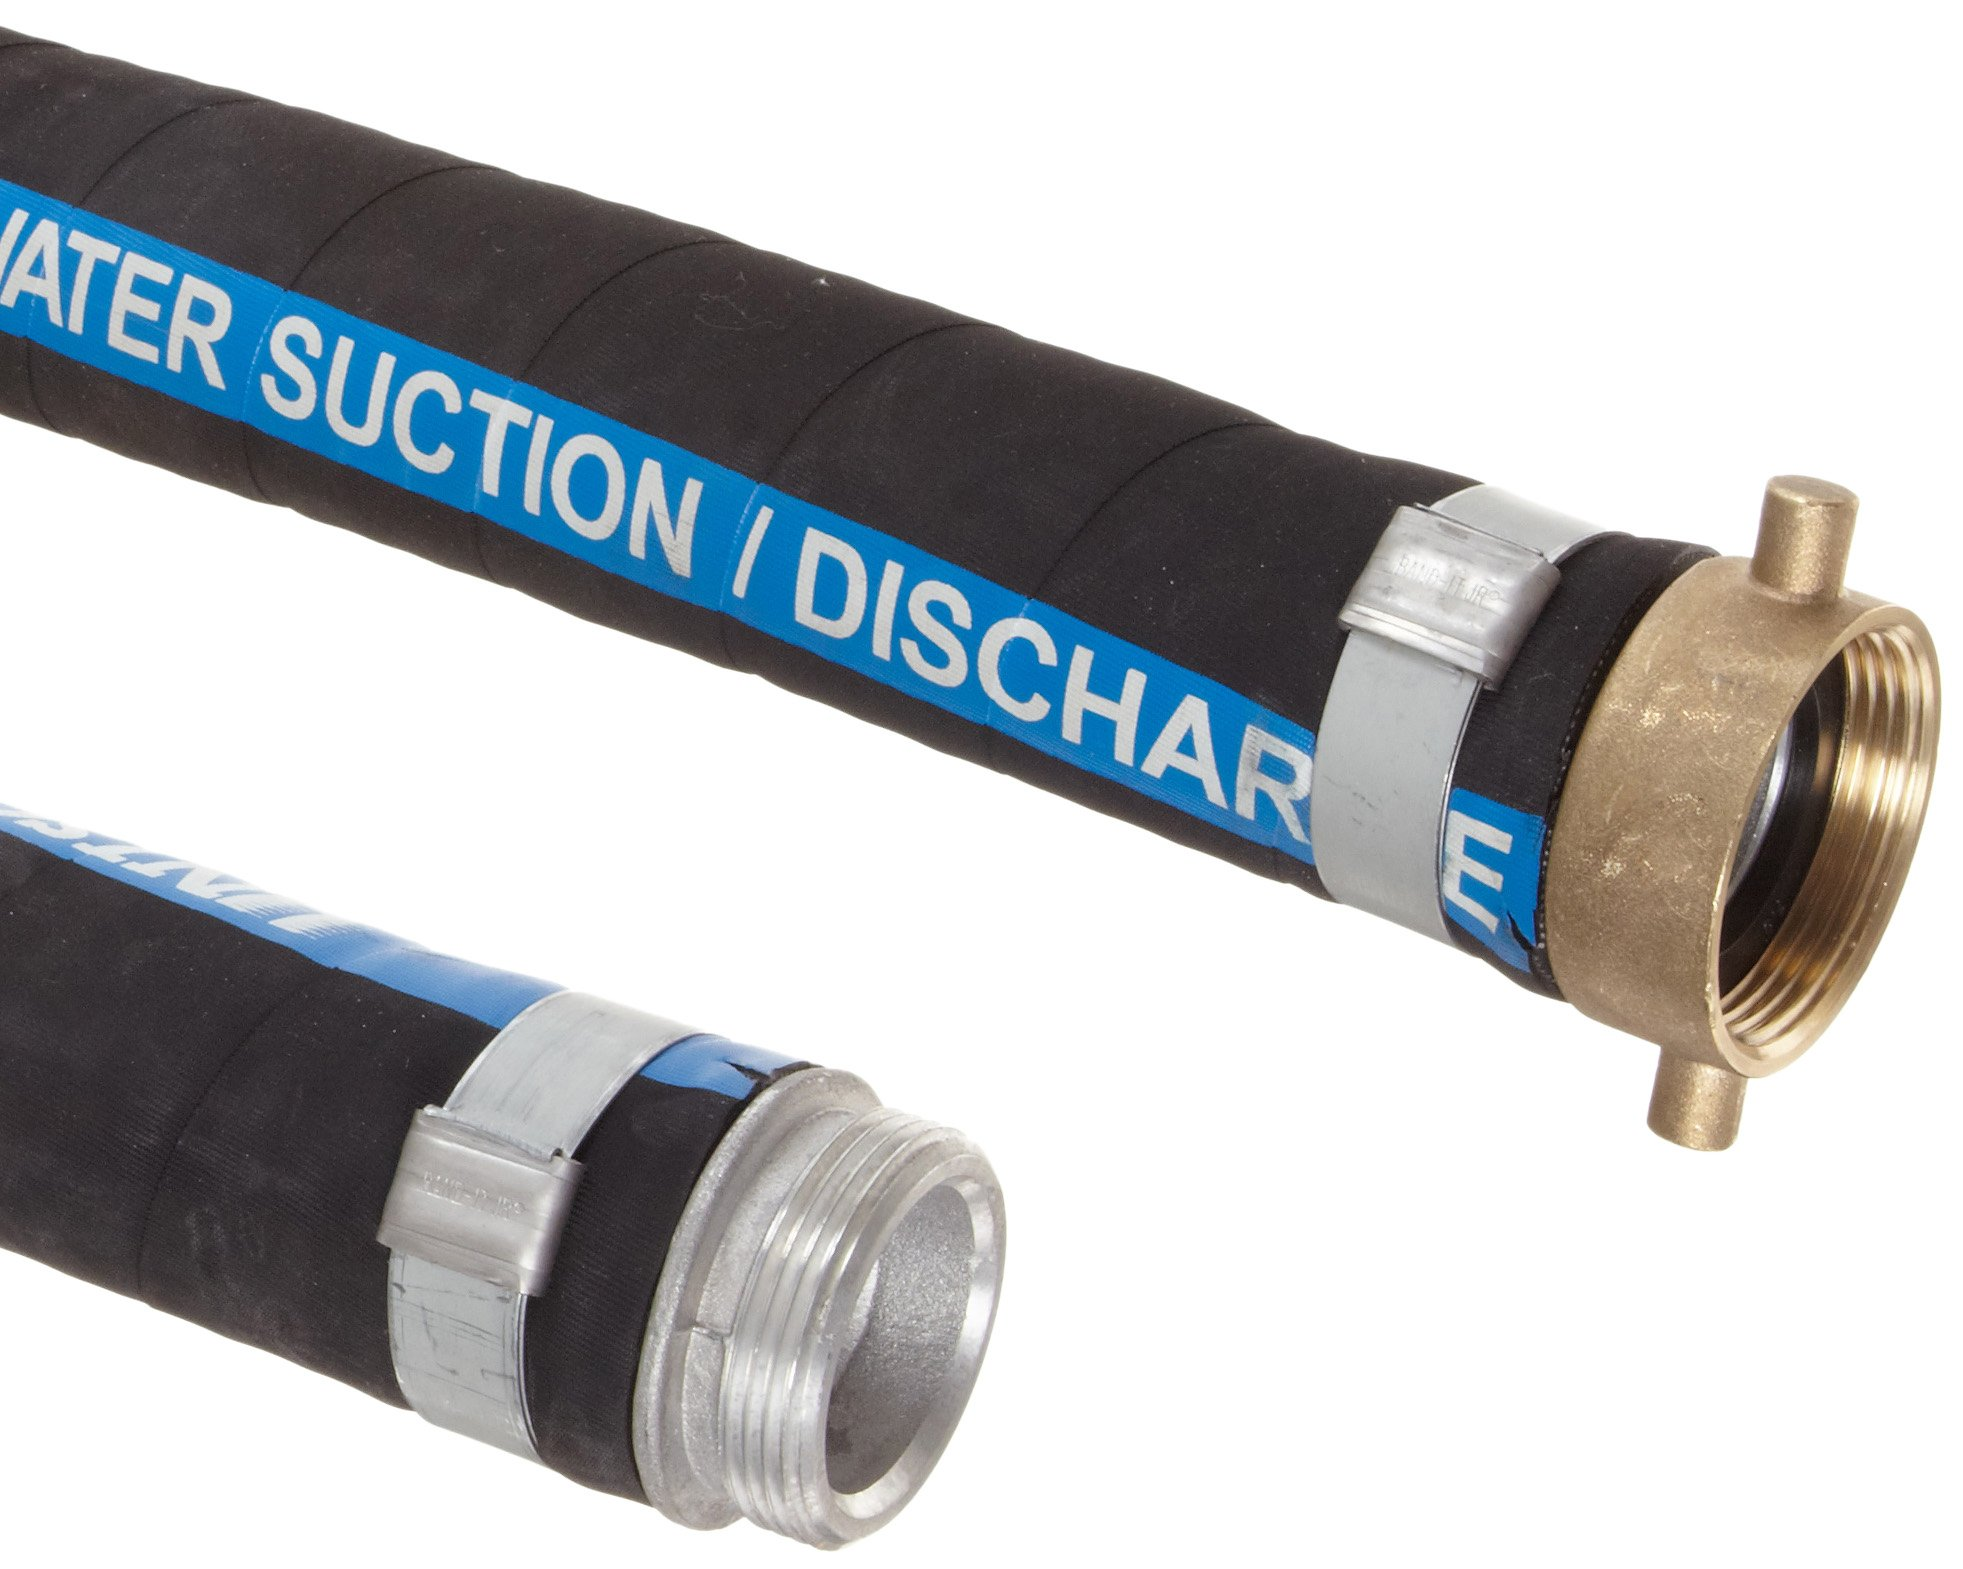 Unisource 2612 Black Rubber Suction/Discharge Hose Assembly, 4'' MPT x NPSM Female Swivel Connection, 150 PSI Maximum Pressure, 10' Length, 4'' ID